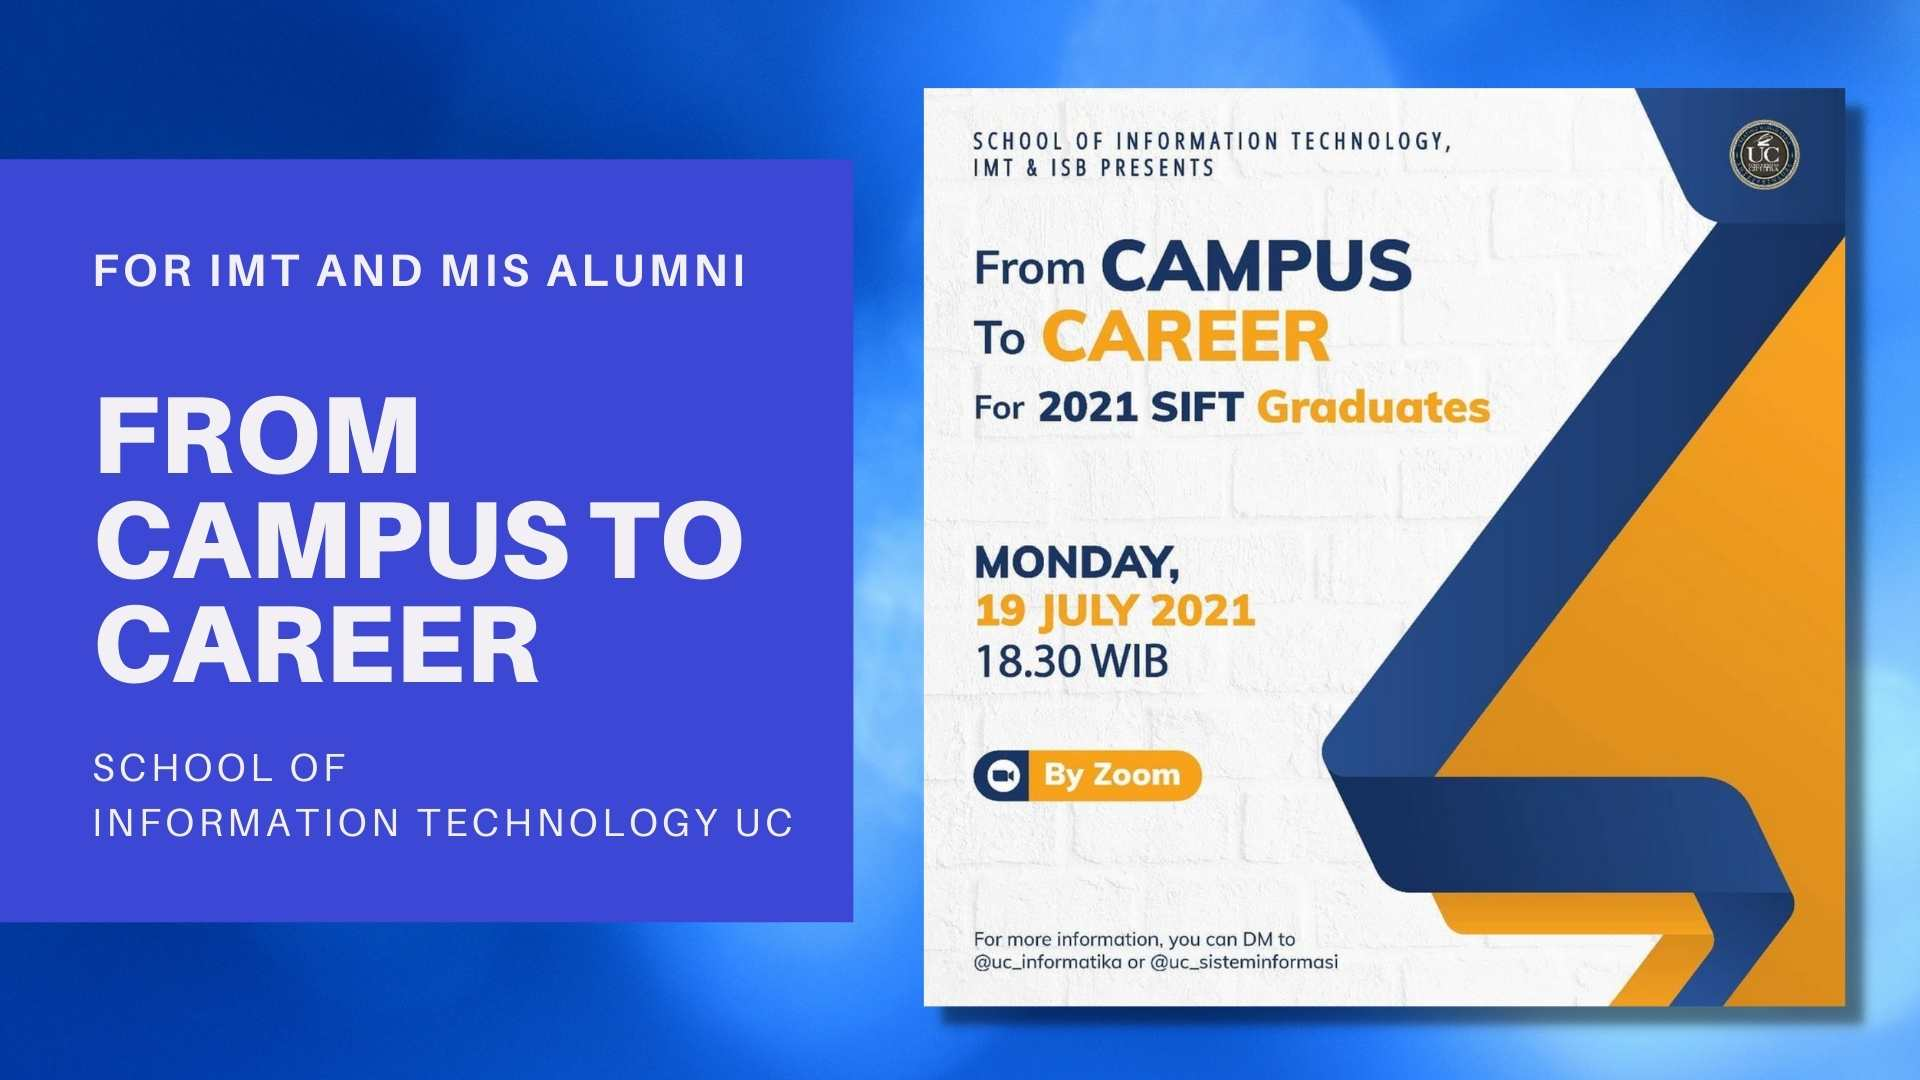 From Campus to Career